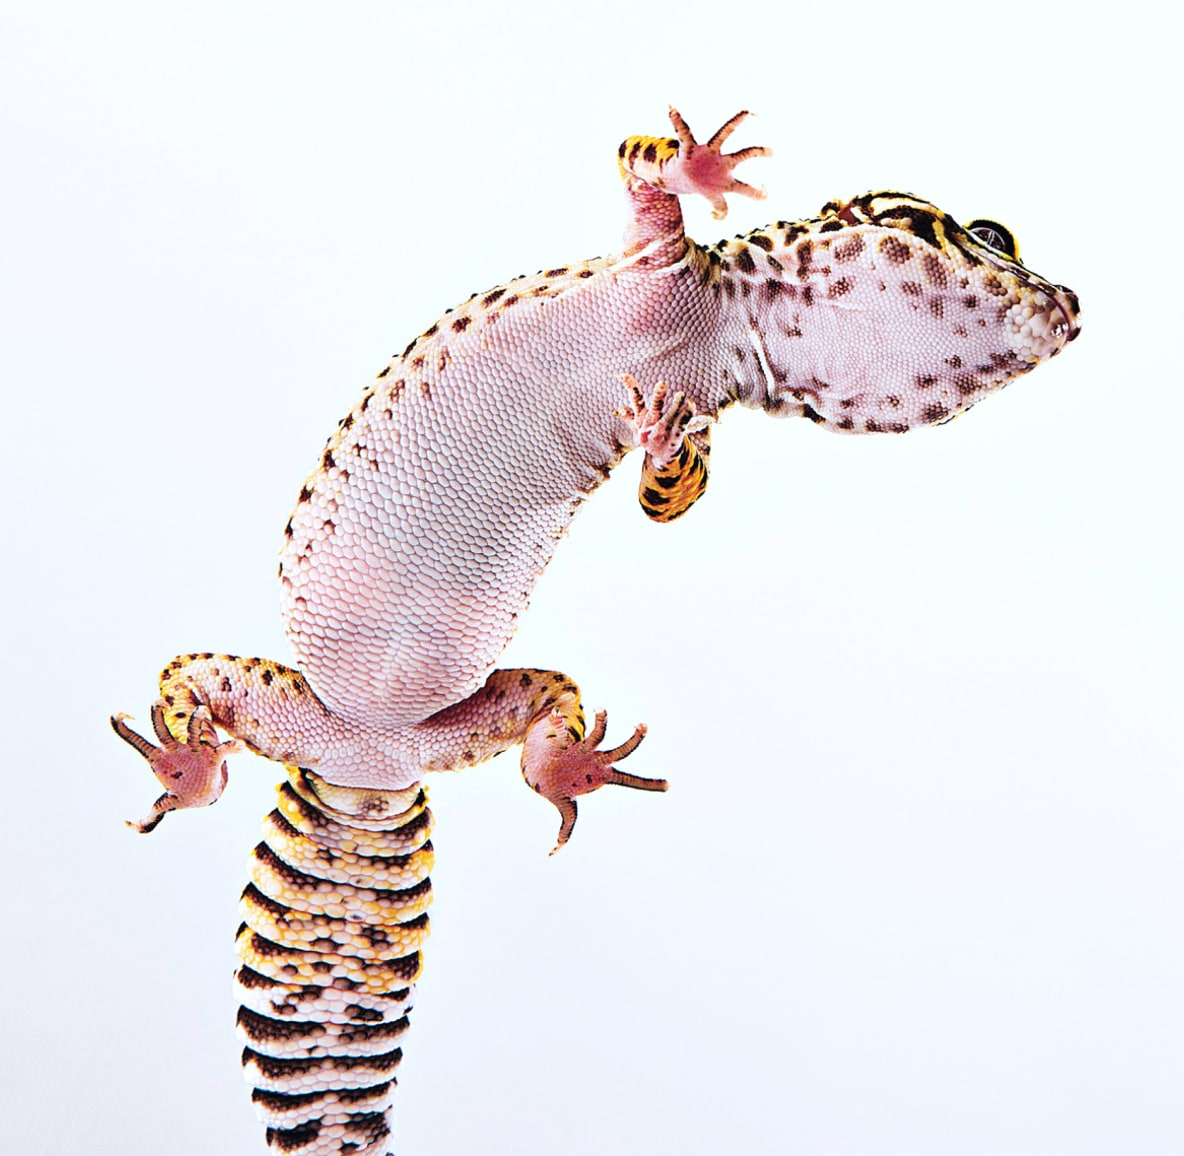 The underside of a yellow lizard with brown spots